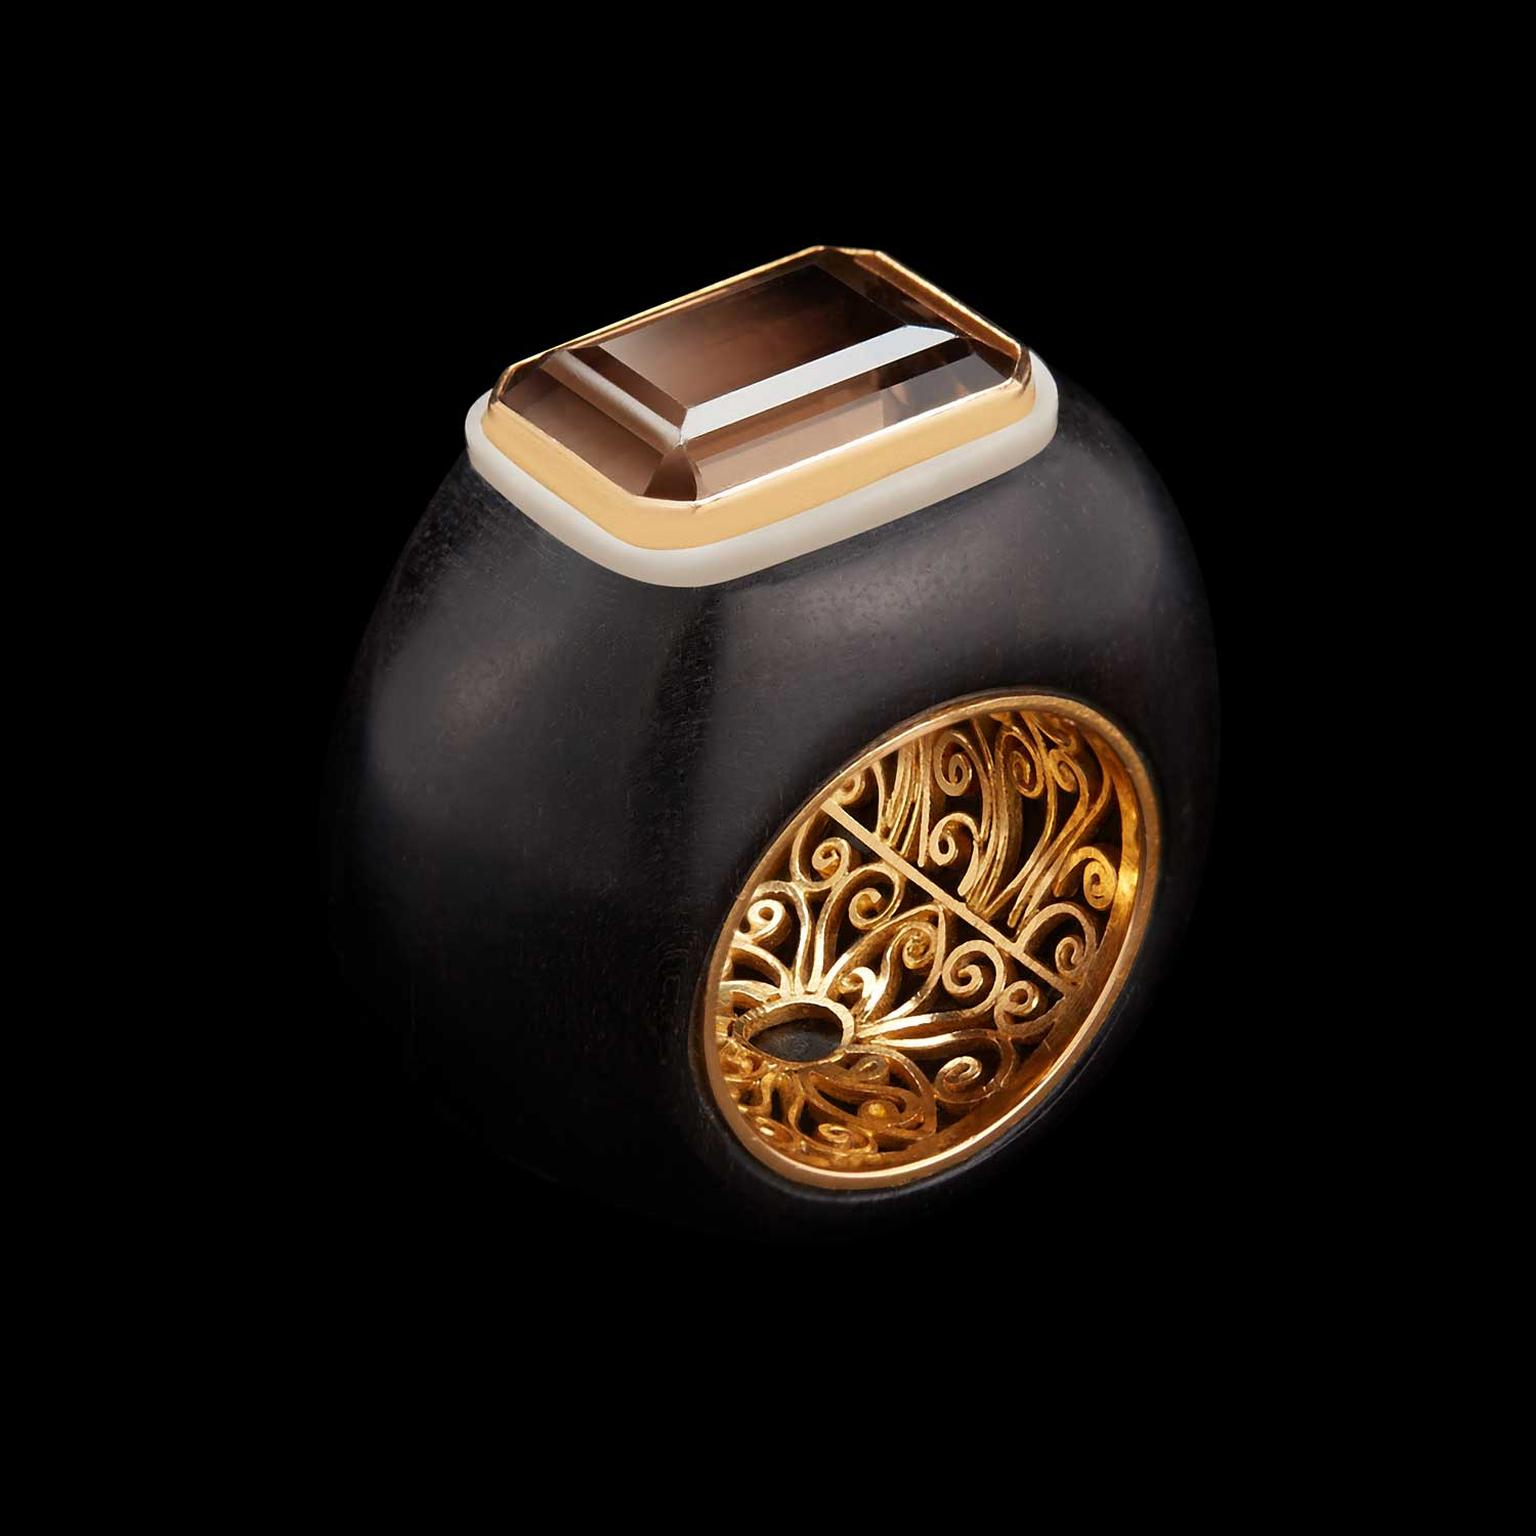 Alexandra Mor emerald-cut smokey topaz set on wood and Tagua nut ring